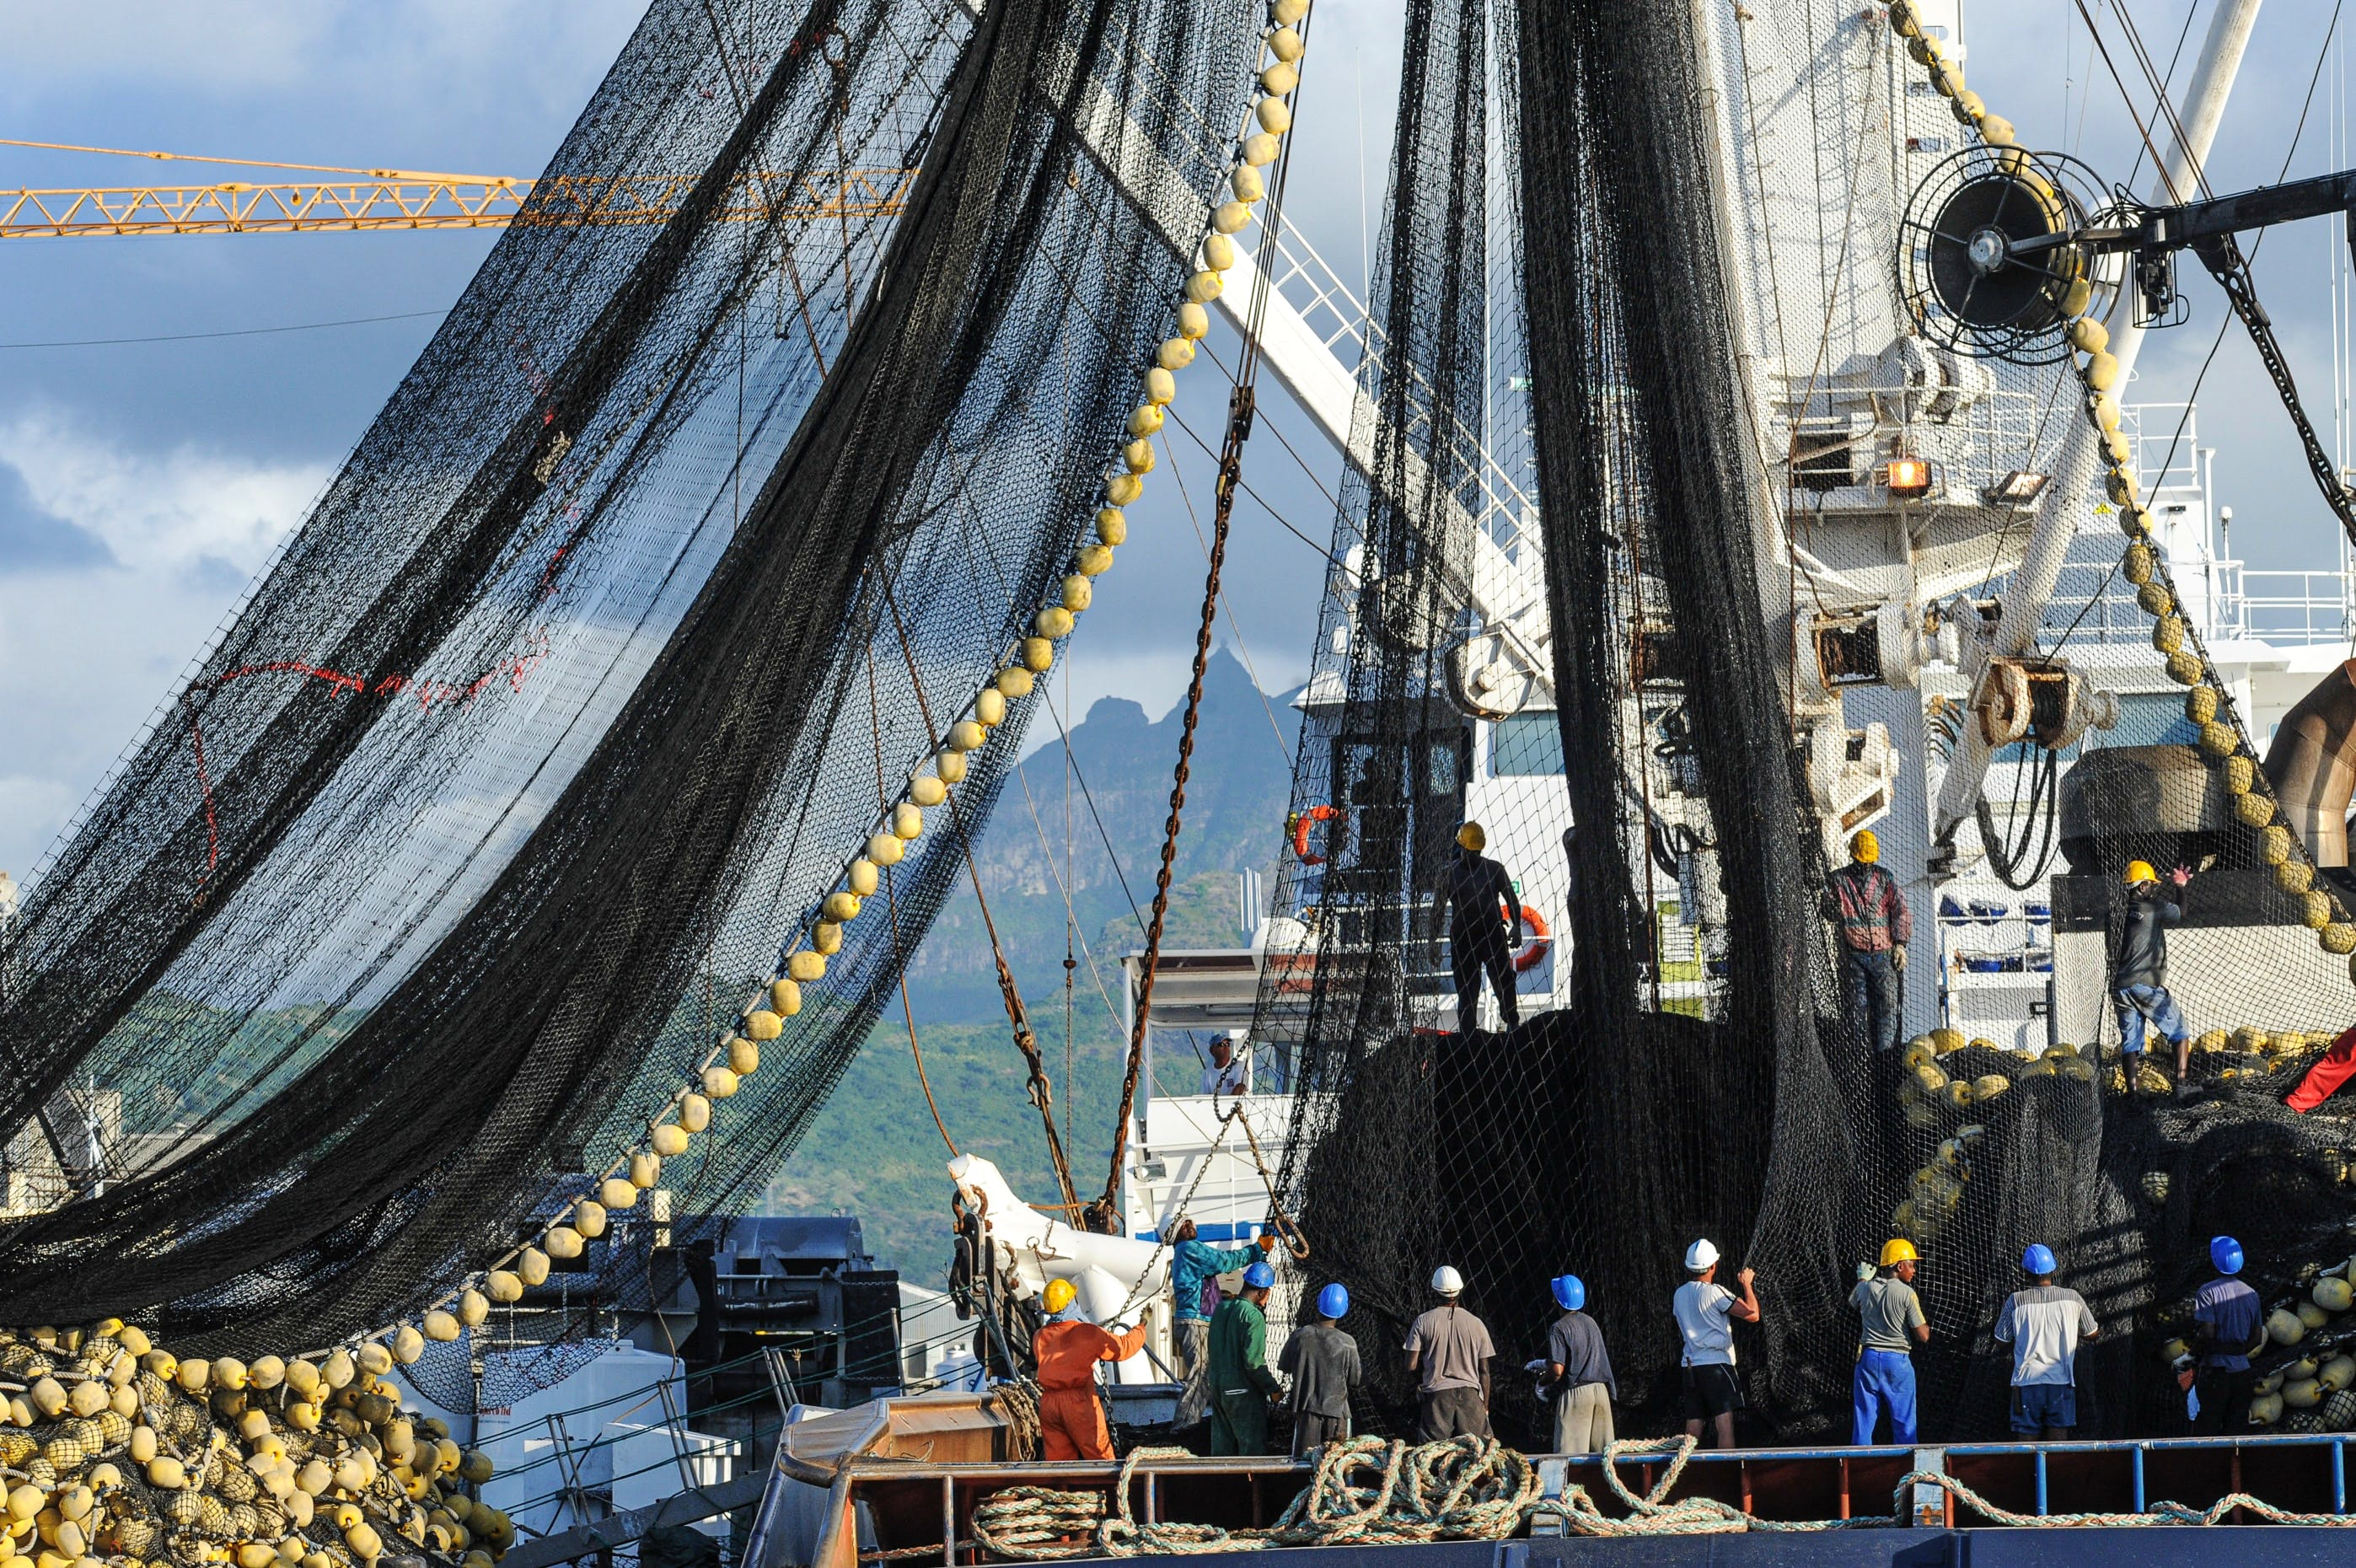 Around the world large fishing trawlers hunt the oceans for fish. Photo courtesy Unsplash/Jo Anne Mcarthur Photo